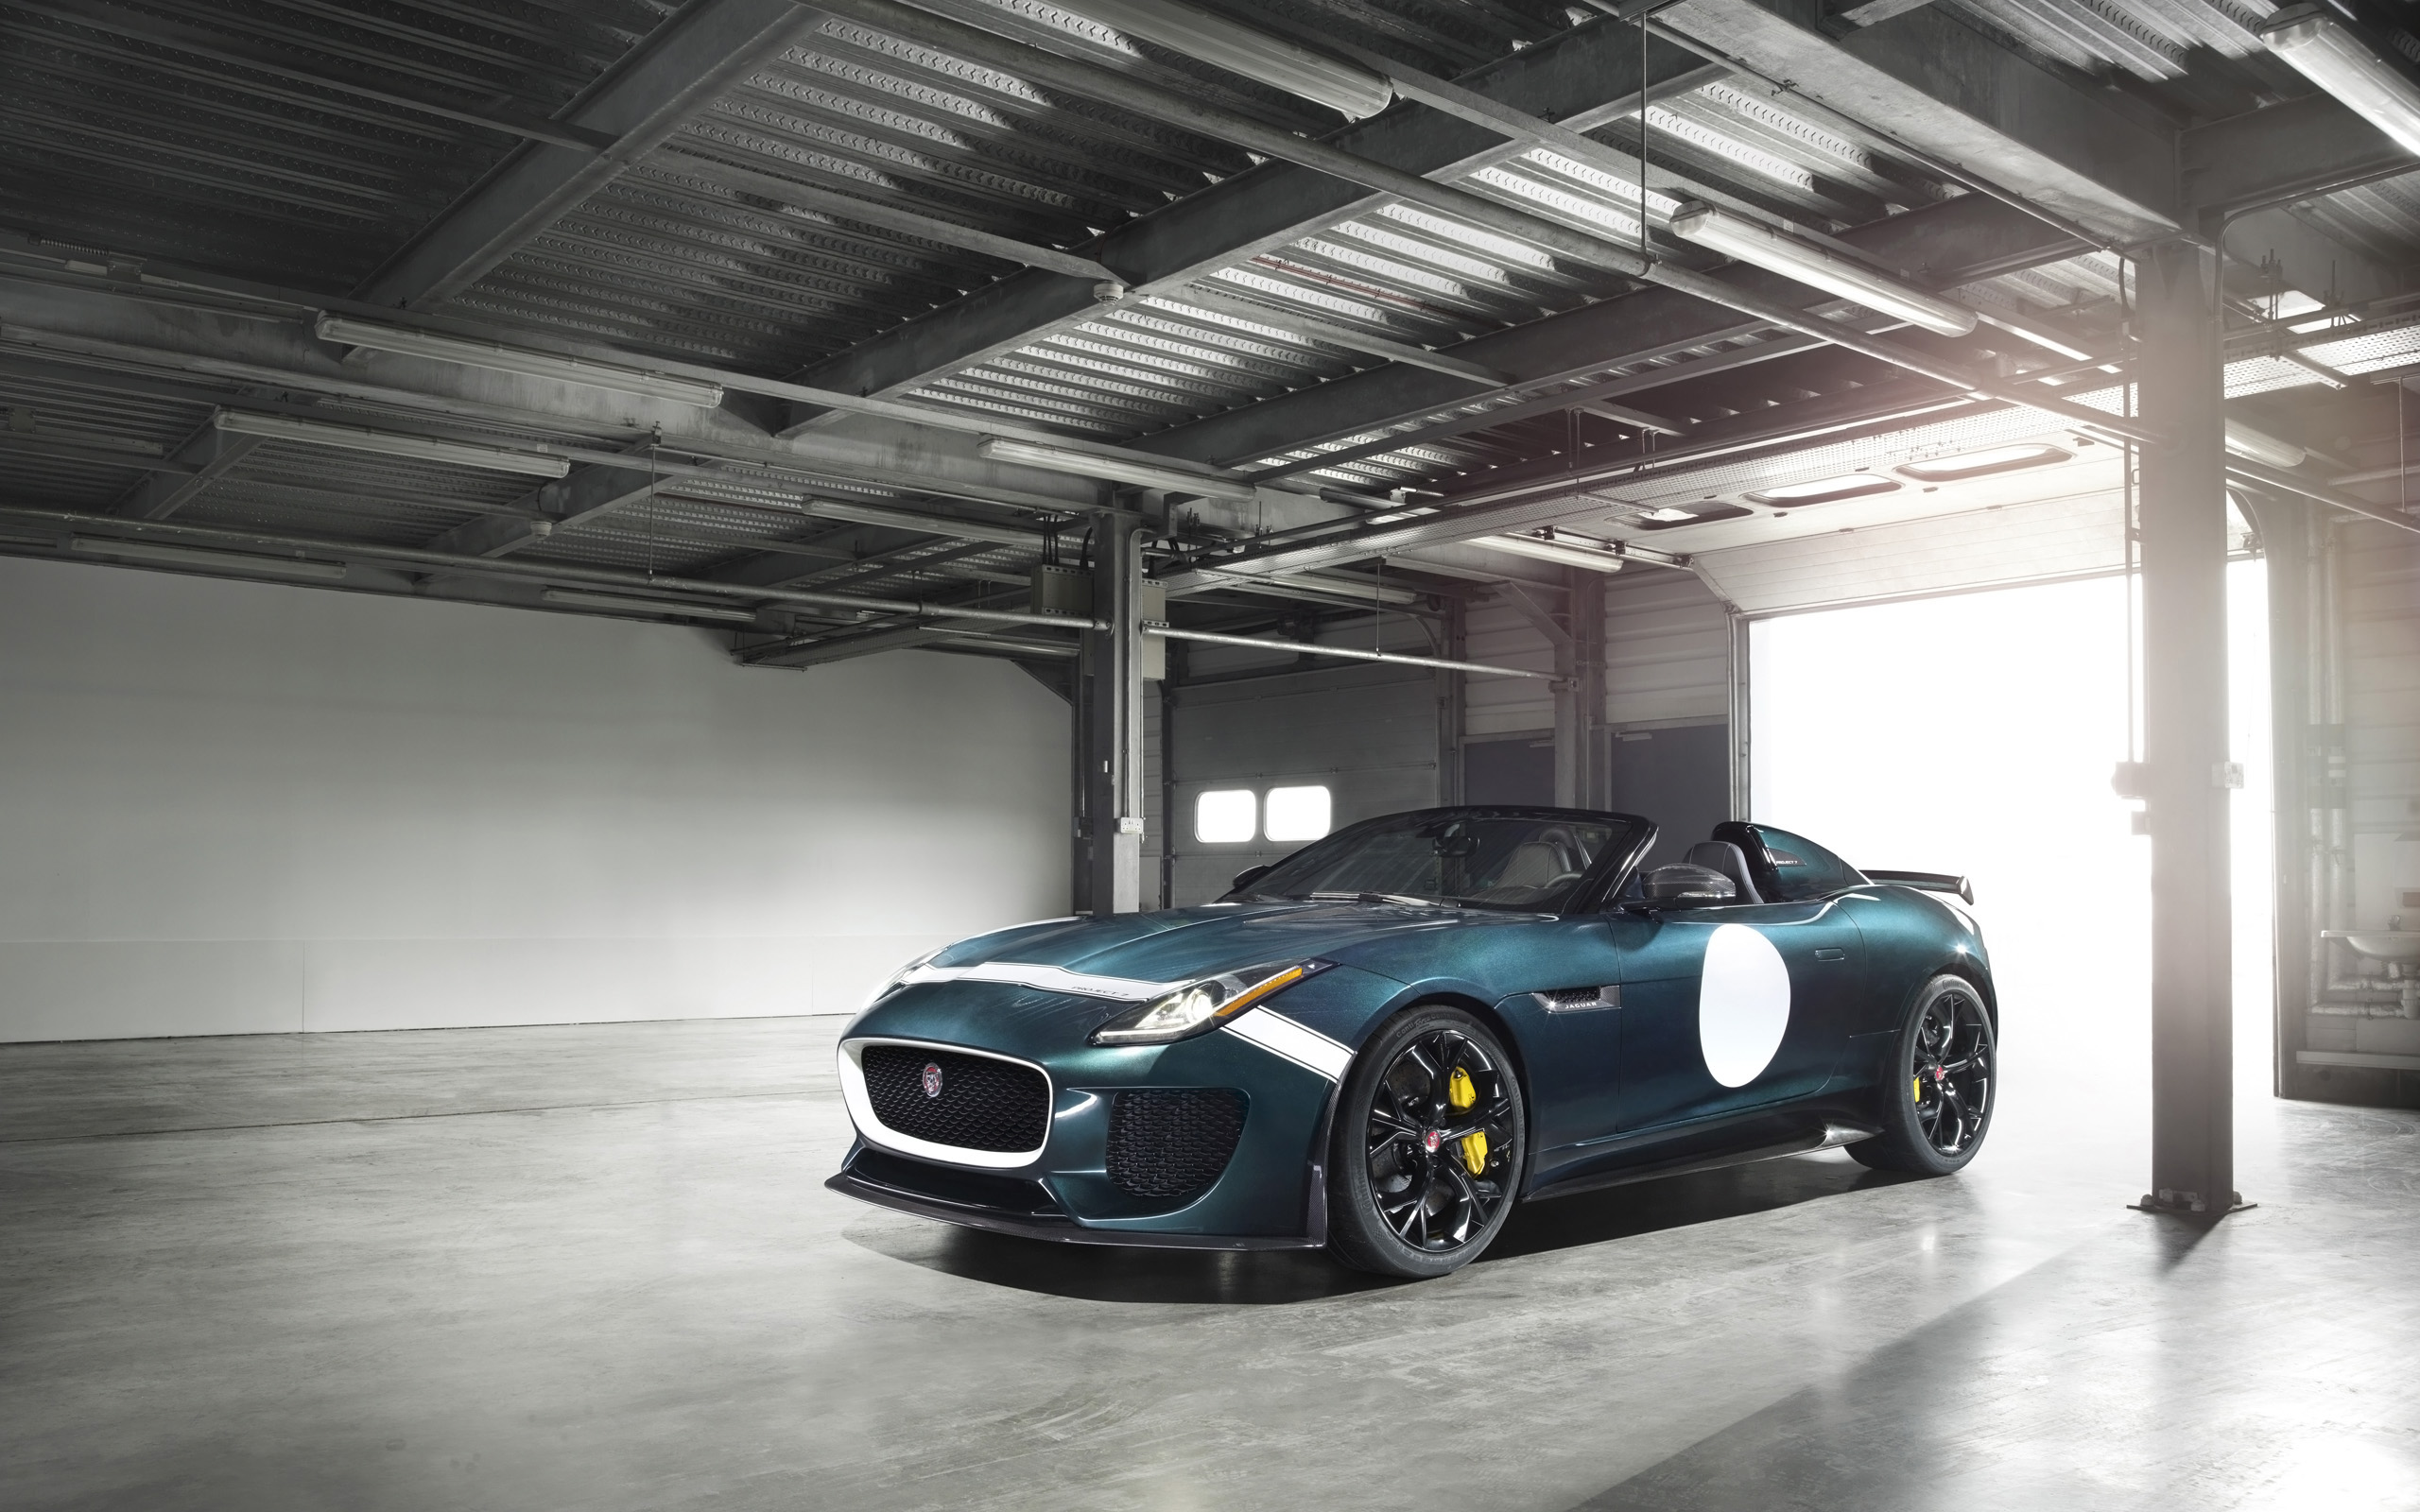 jaguar f type project 7 2015 wallpaper hd car wallpapers id 4641. Black Bedroom Furniture Sets. Home Design Ideas